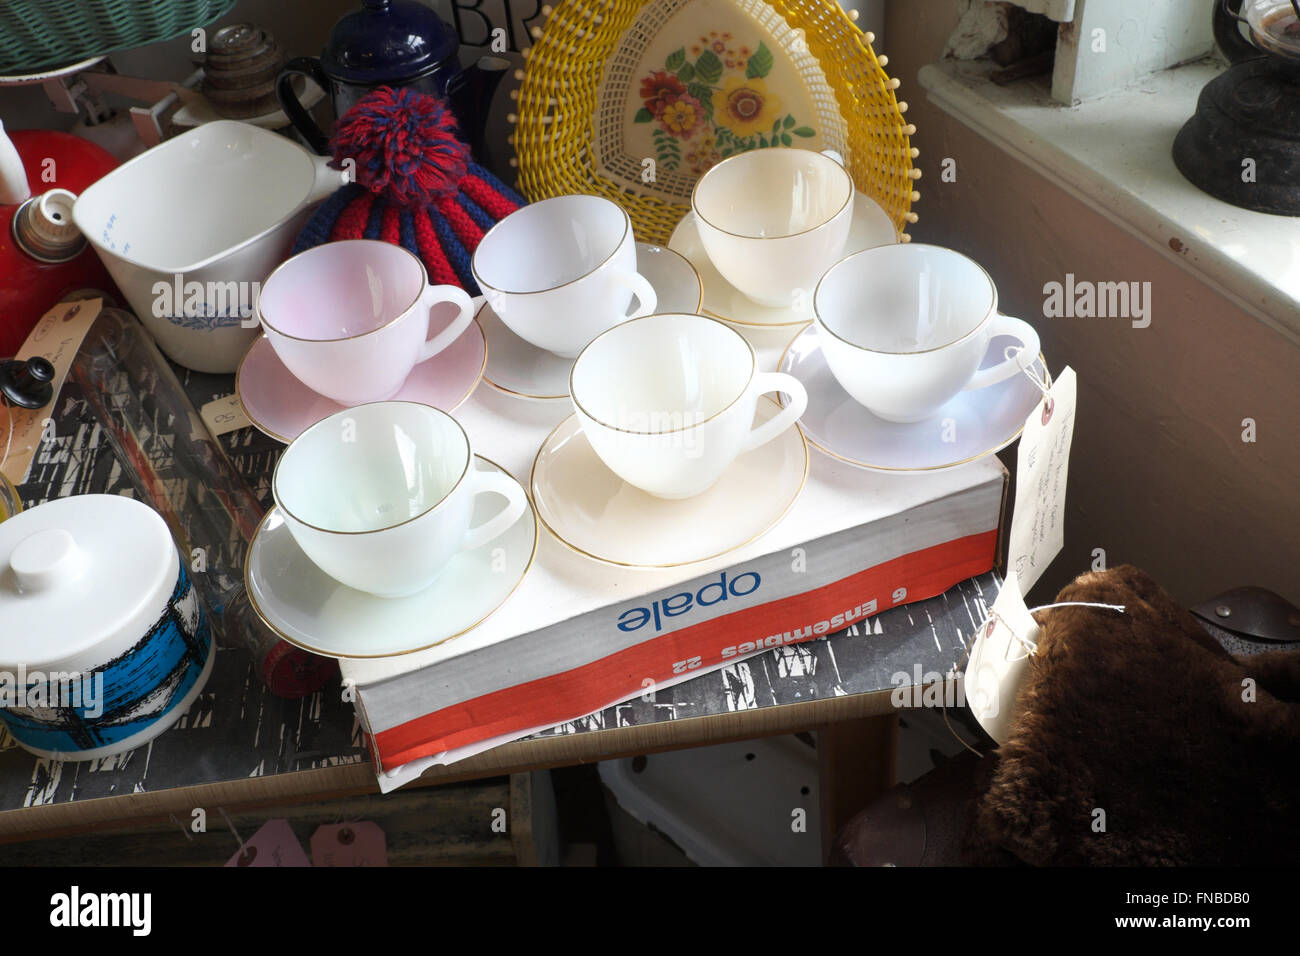 Set of Opale cups and saucers from the 1960s for sale in a vintage retro antique shop store in Leominster Herefordshire - Stock Image